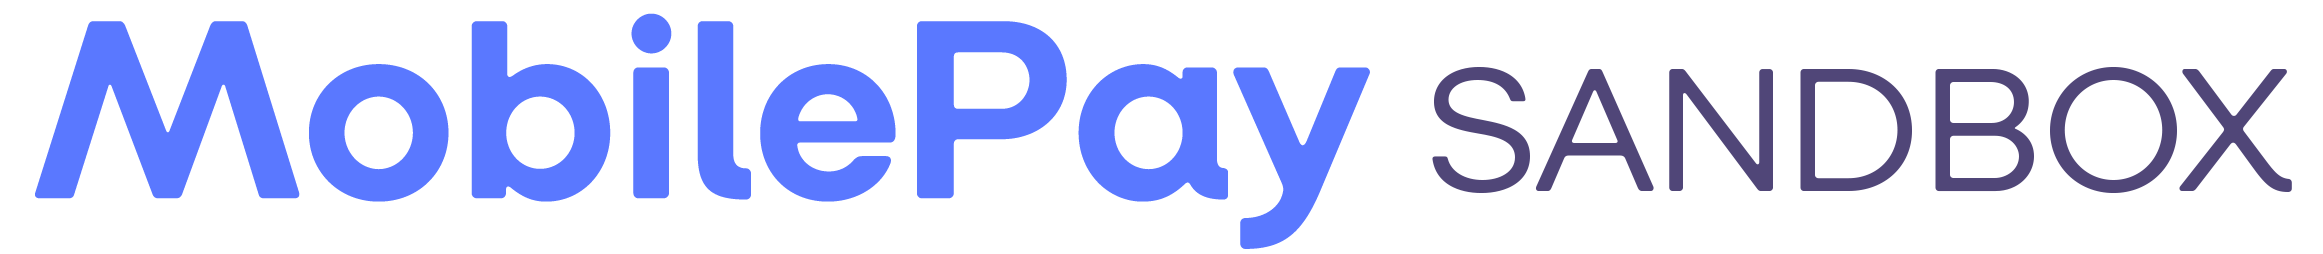 MobilePay Developer | Sandbox